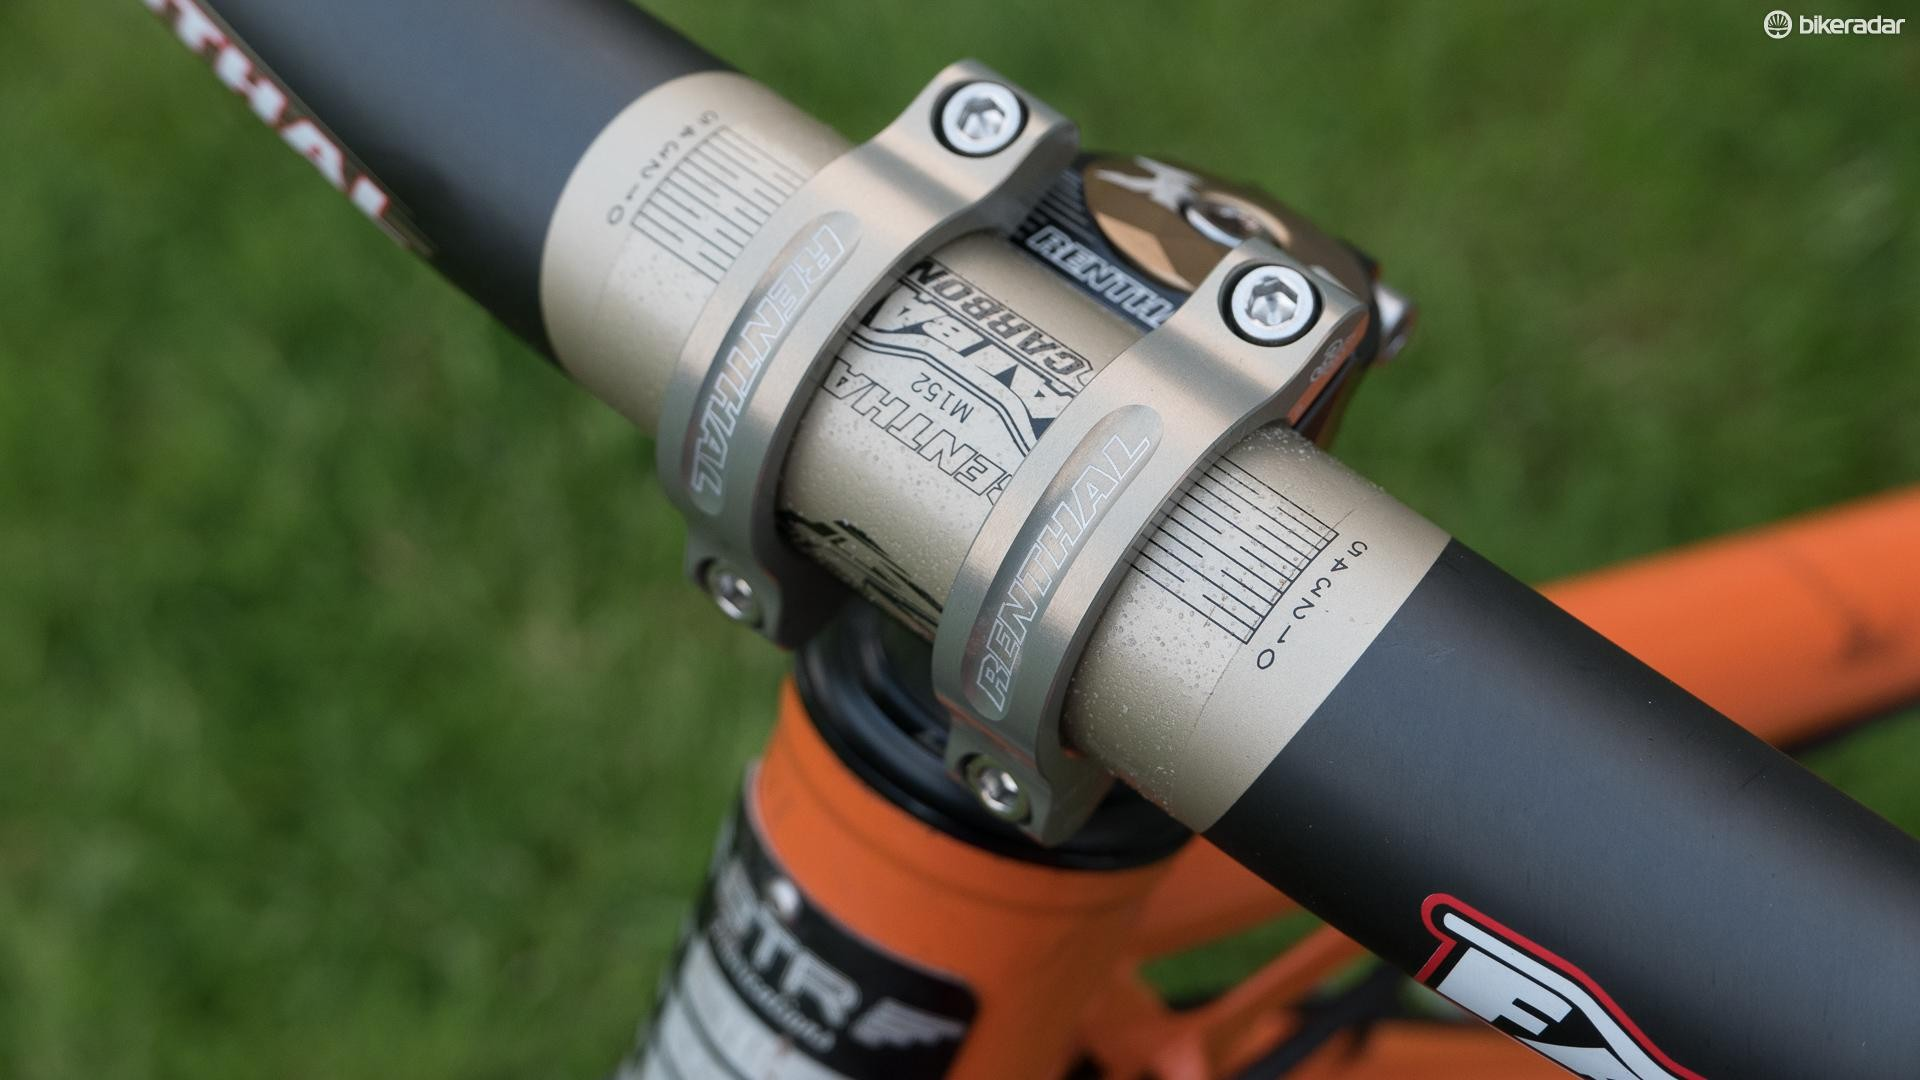 Corresponding Apex and Integra Stems have also been launched